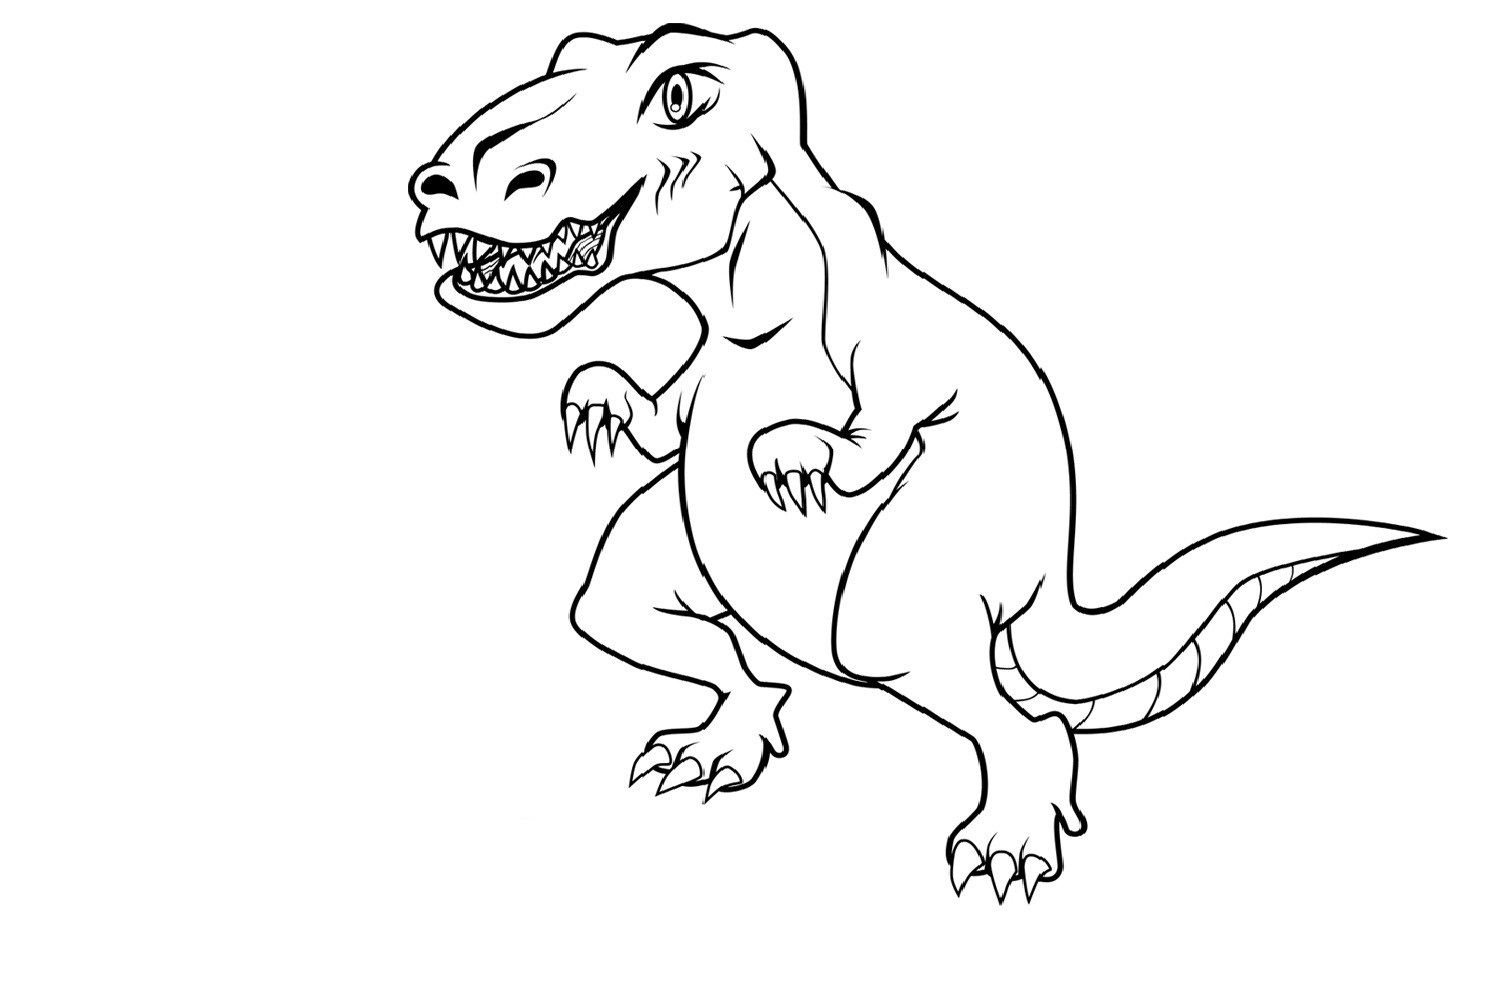 dinosaurus coloring pages - photo#22